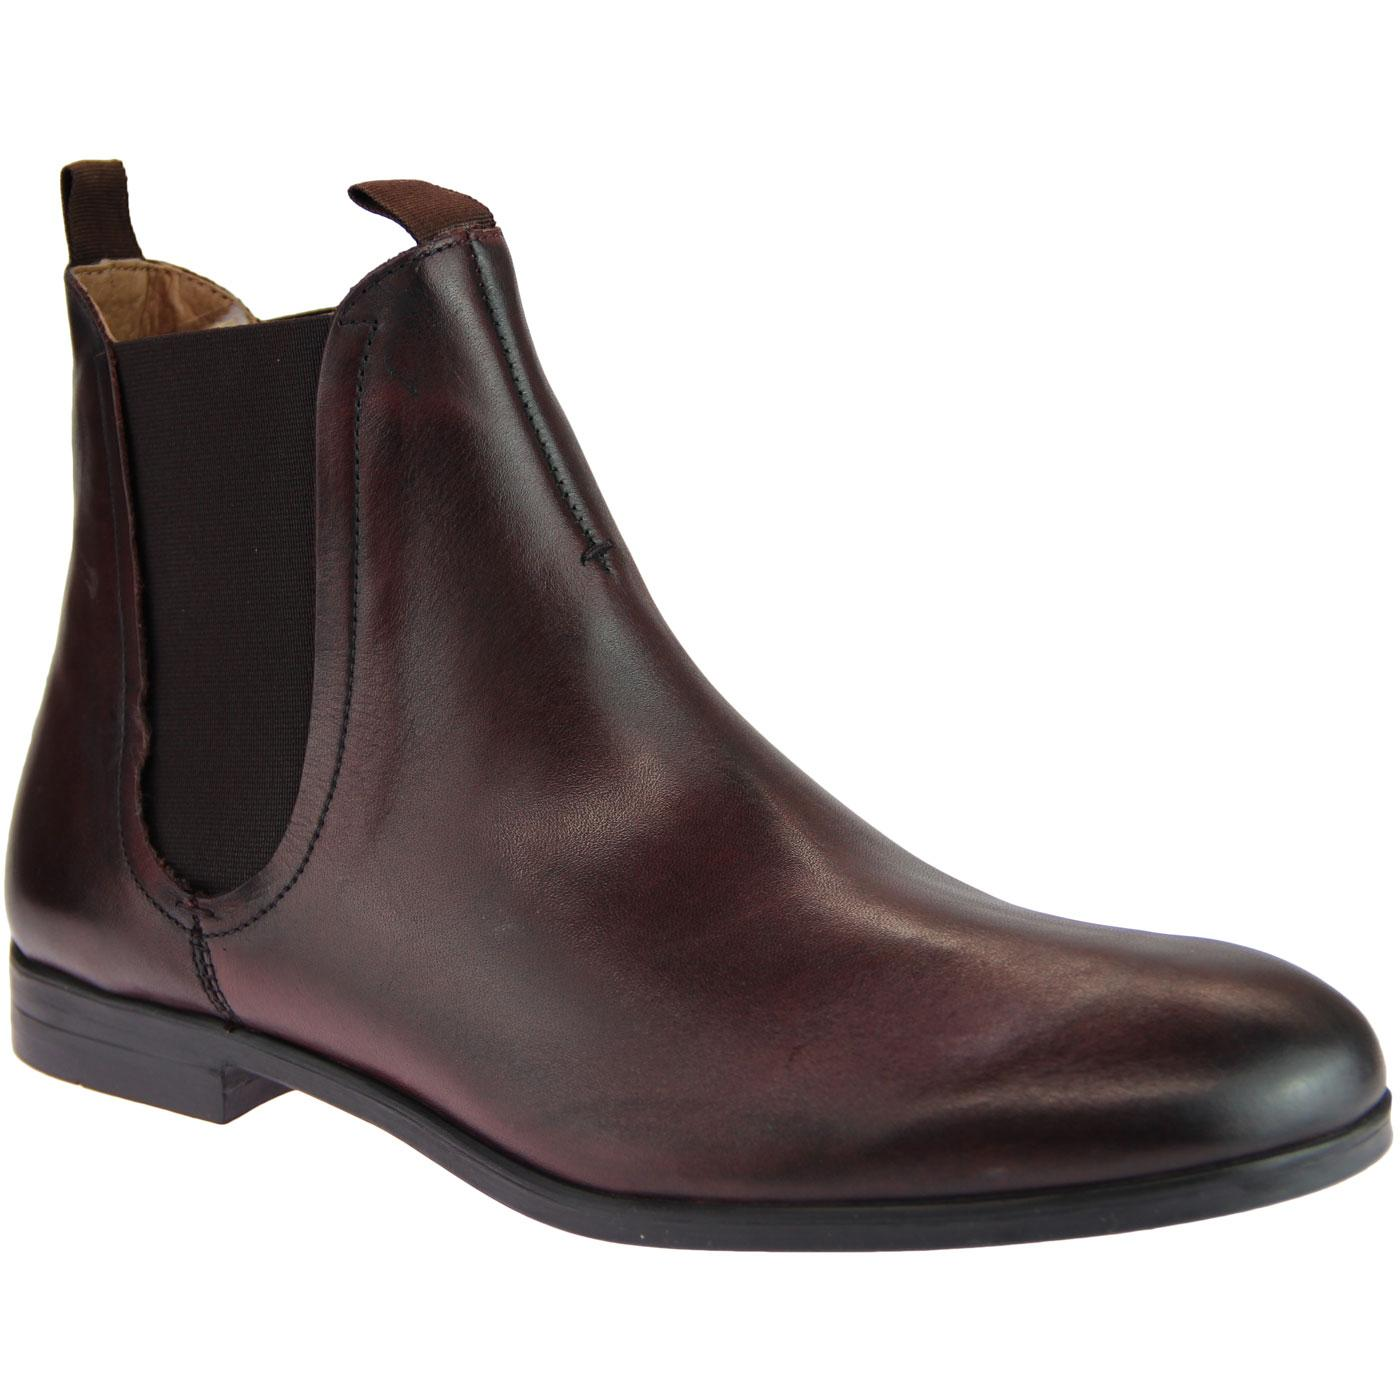 Atherstone HUDSON Mod Leather Chelsea Boots BROWN